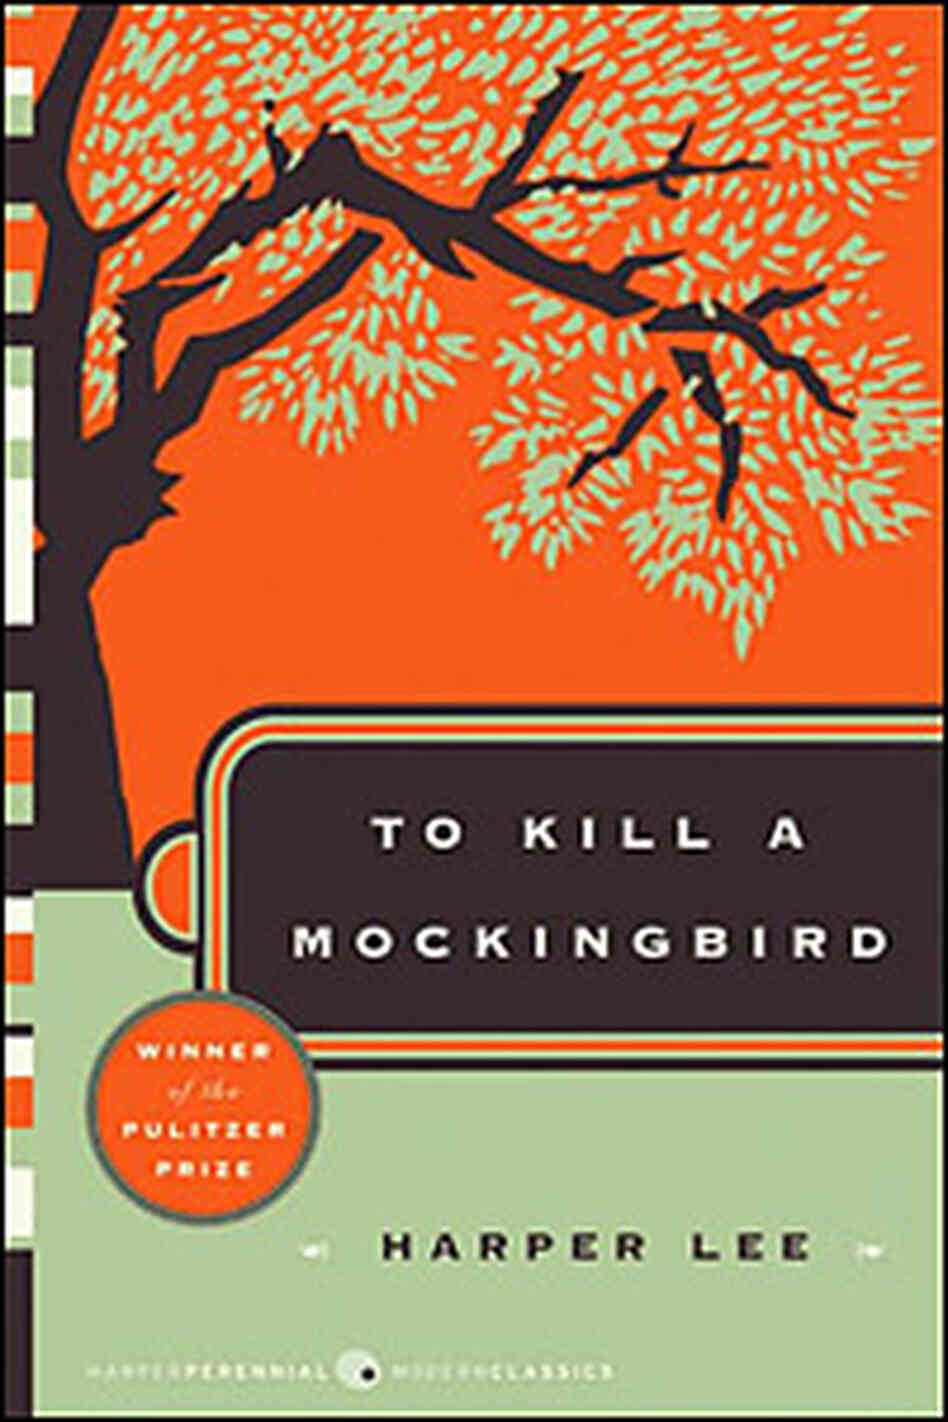 to kill a mockingbird literary depiction of south and racism Jeff daniels to star in aaron sorkin's broadway 'to kill a mockingbird atticus finch in aaron sorkin's upcoming stage adaptation of harper lee's pulitzer prize-winning landmark of american literature to kill a mockingbird its startling depiction of ingrained racism in the deep south.